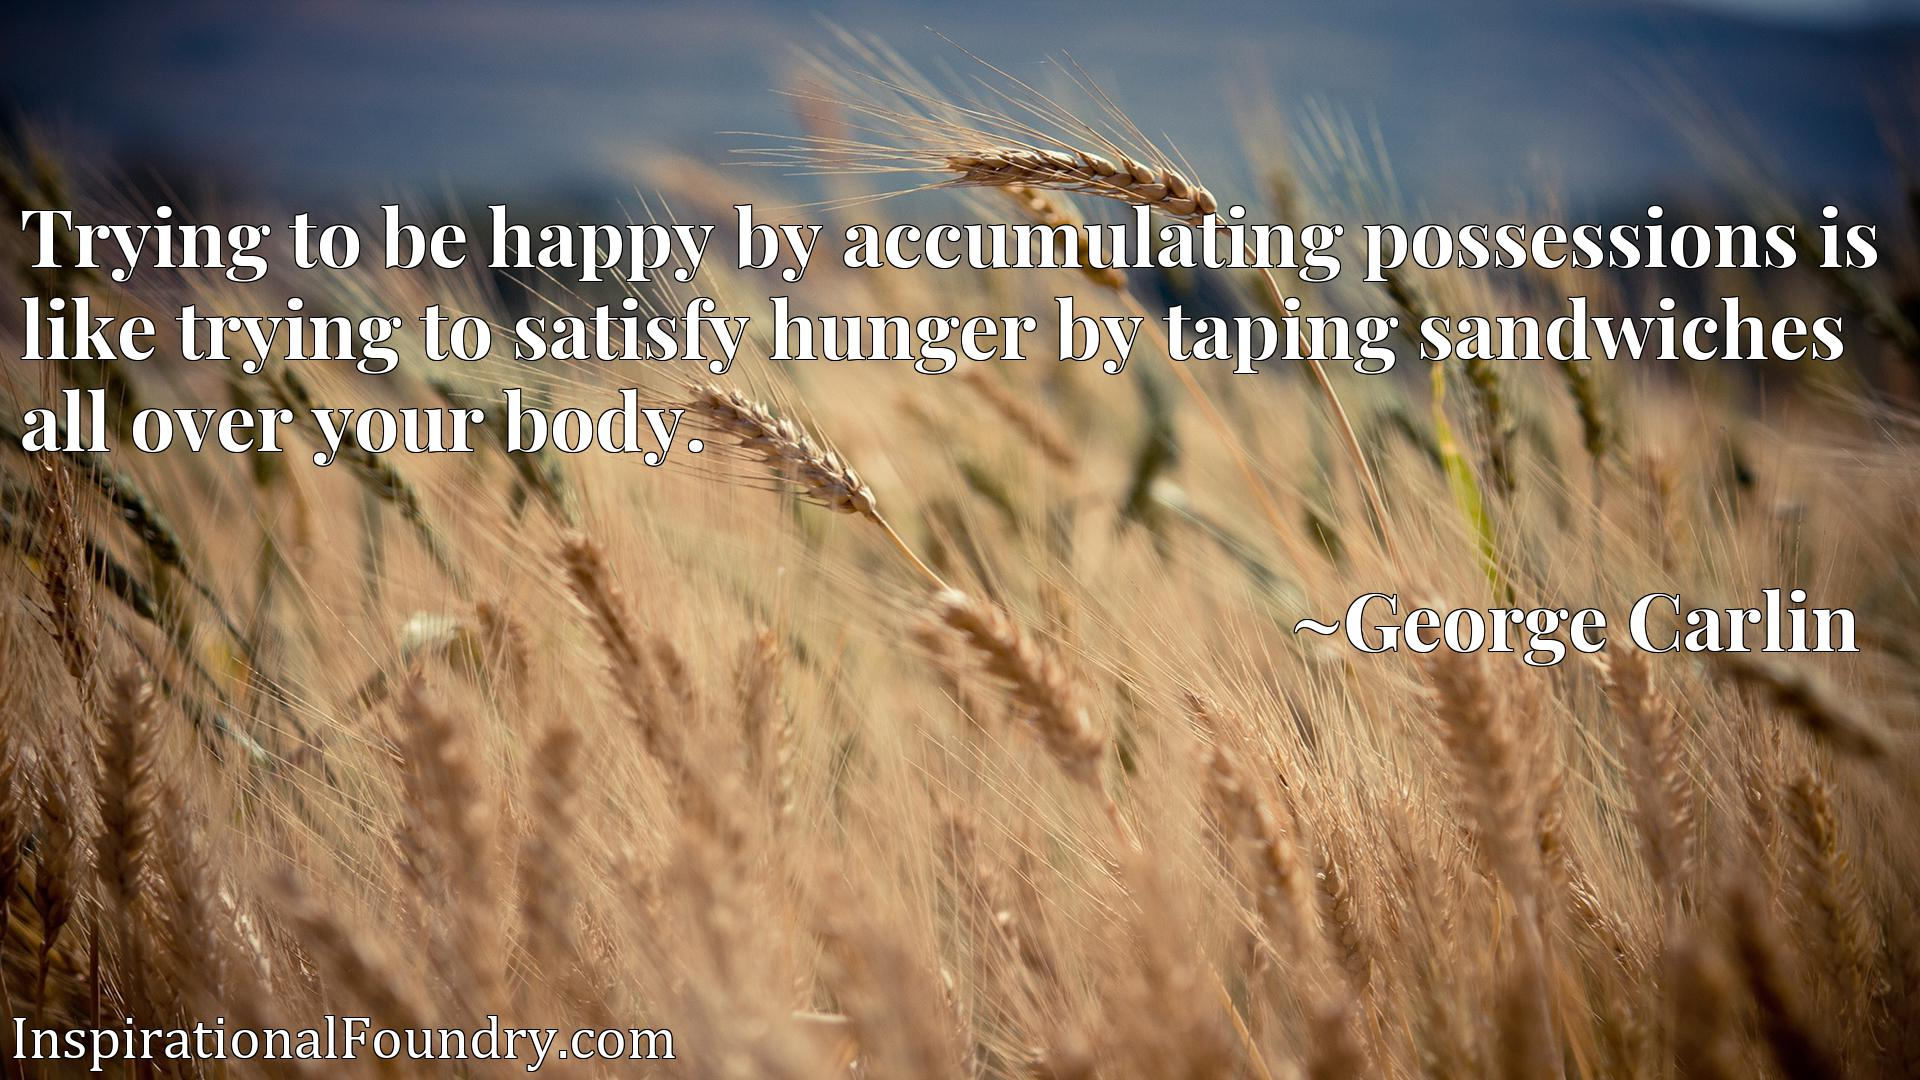 Trying to be happy by accumulating possessions is like trying to satisfy hunger by taping sandwiches all over your body.